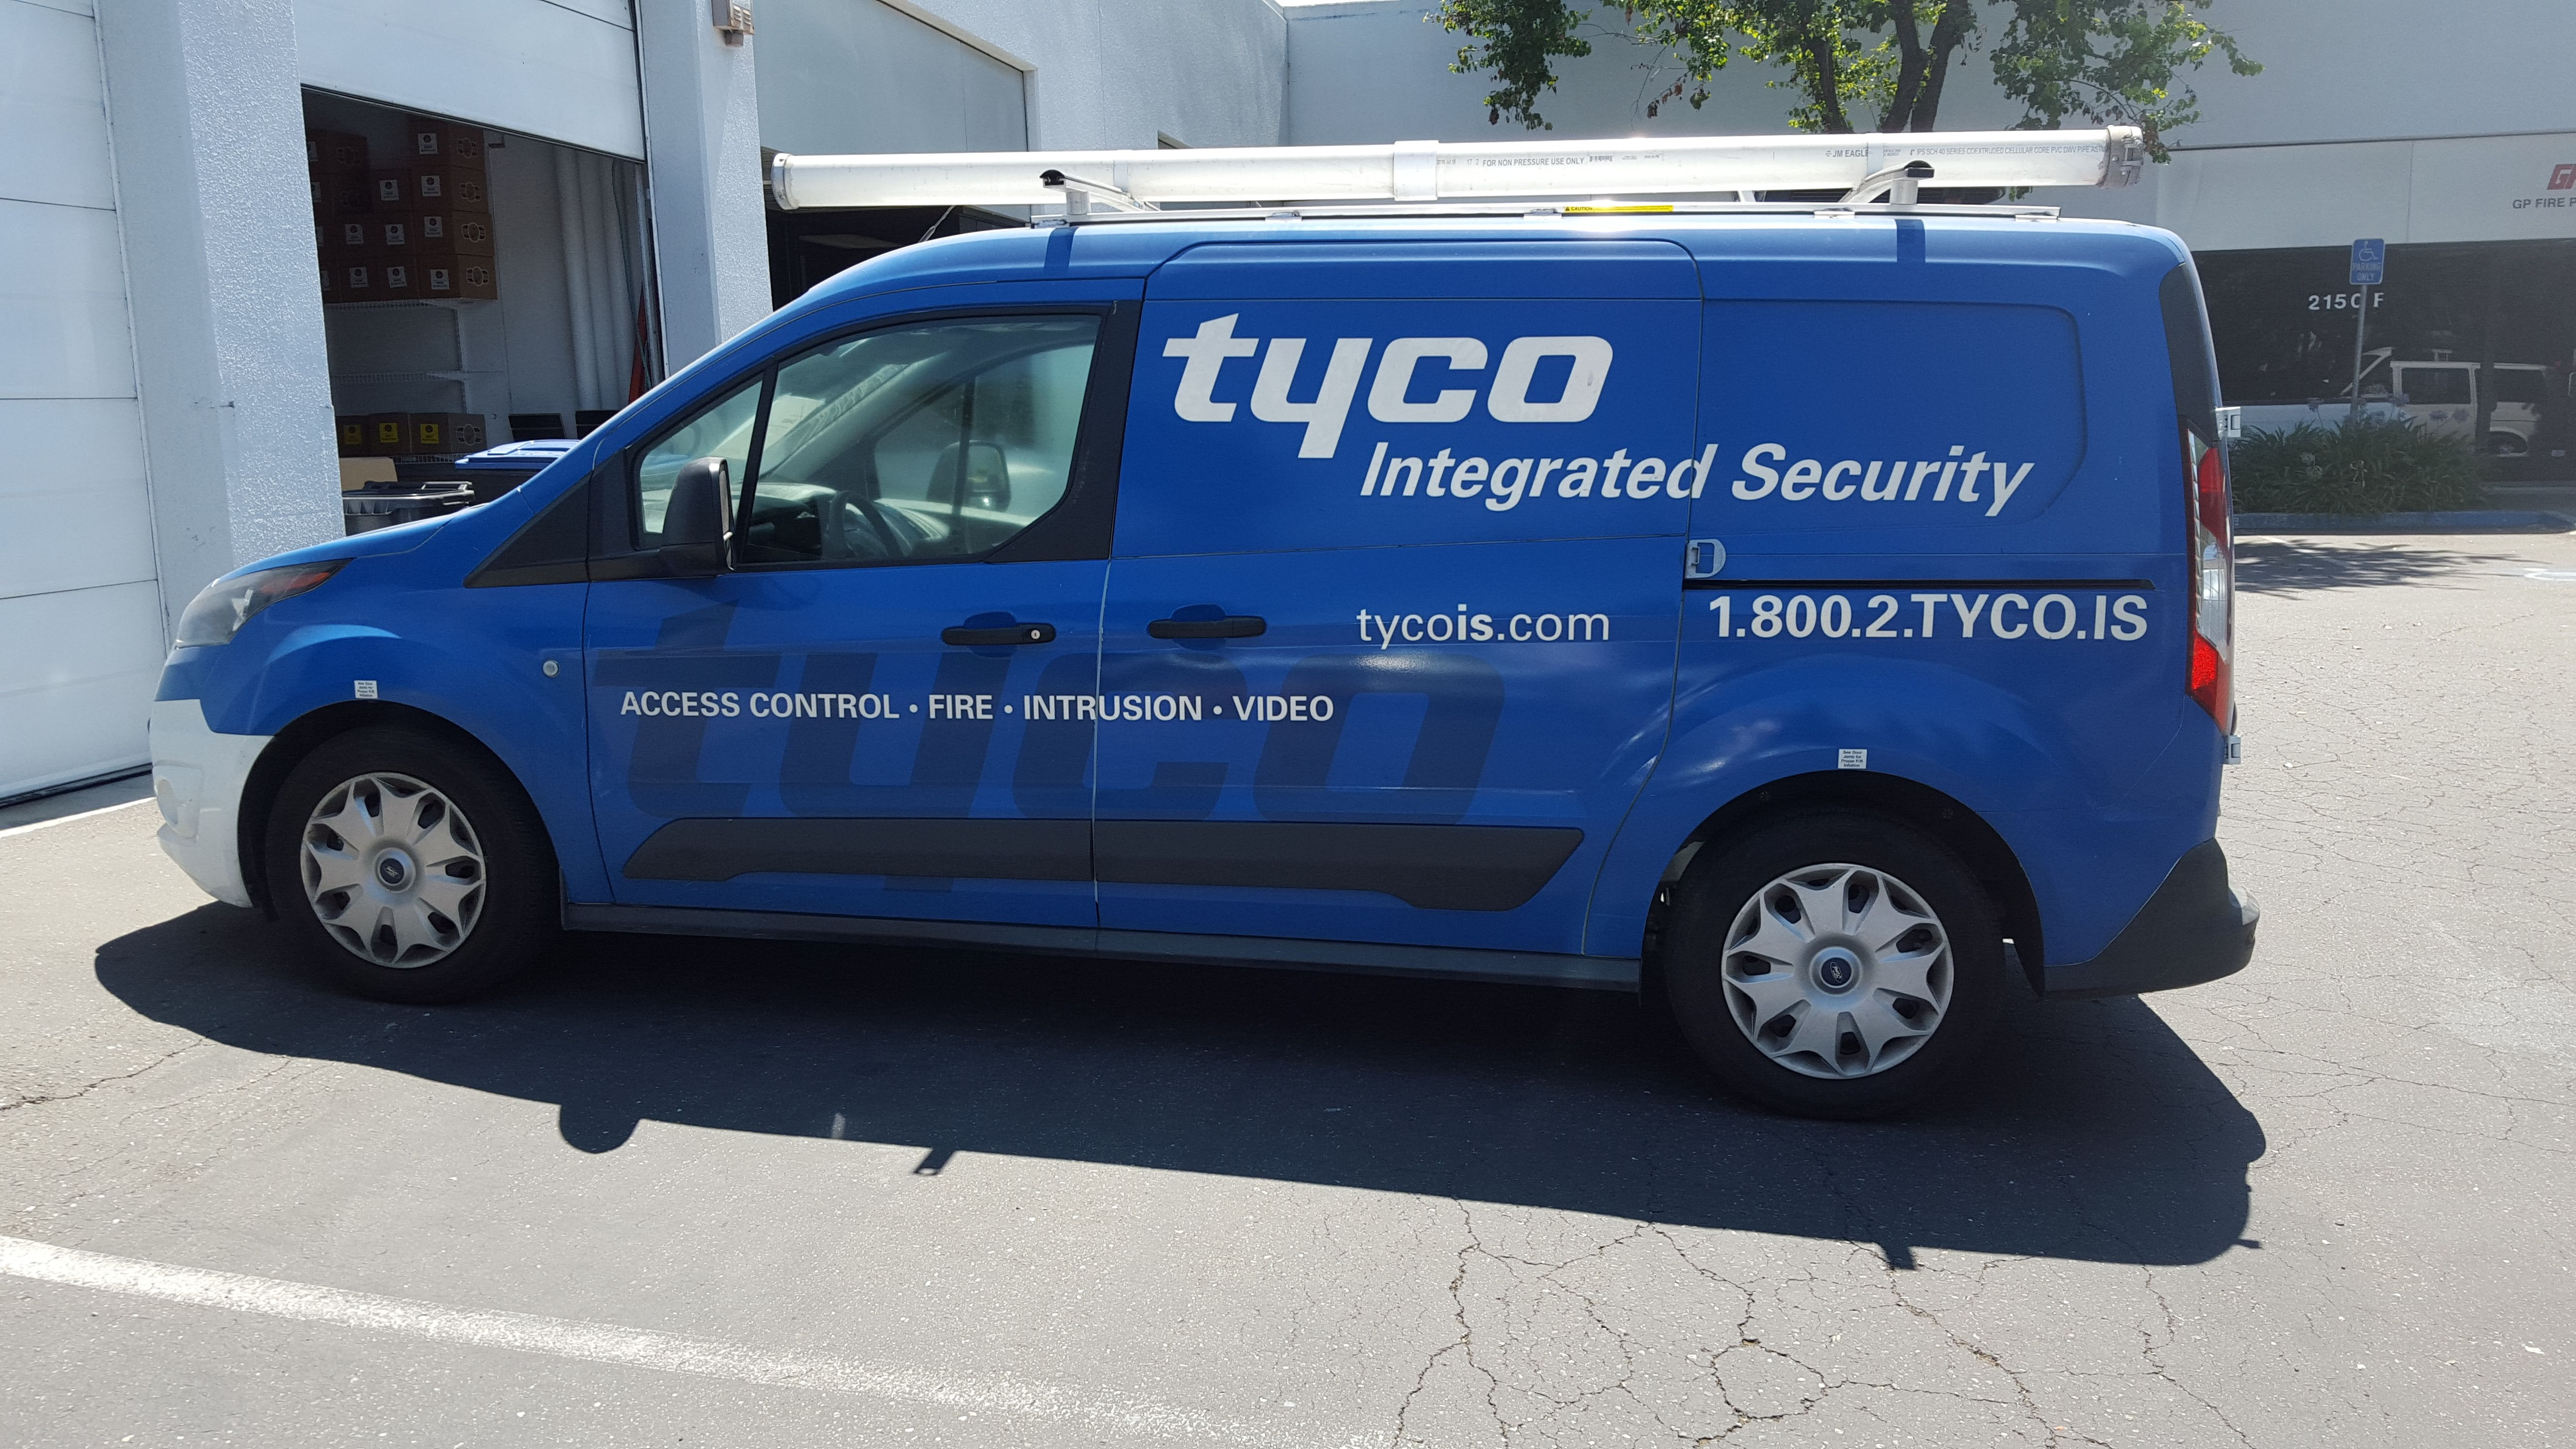 Tyco vehicle graphics by Insignia Deisgns Vehicle wraps for local